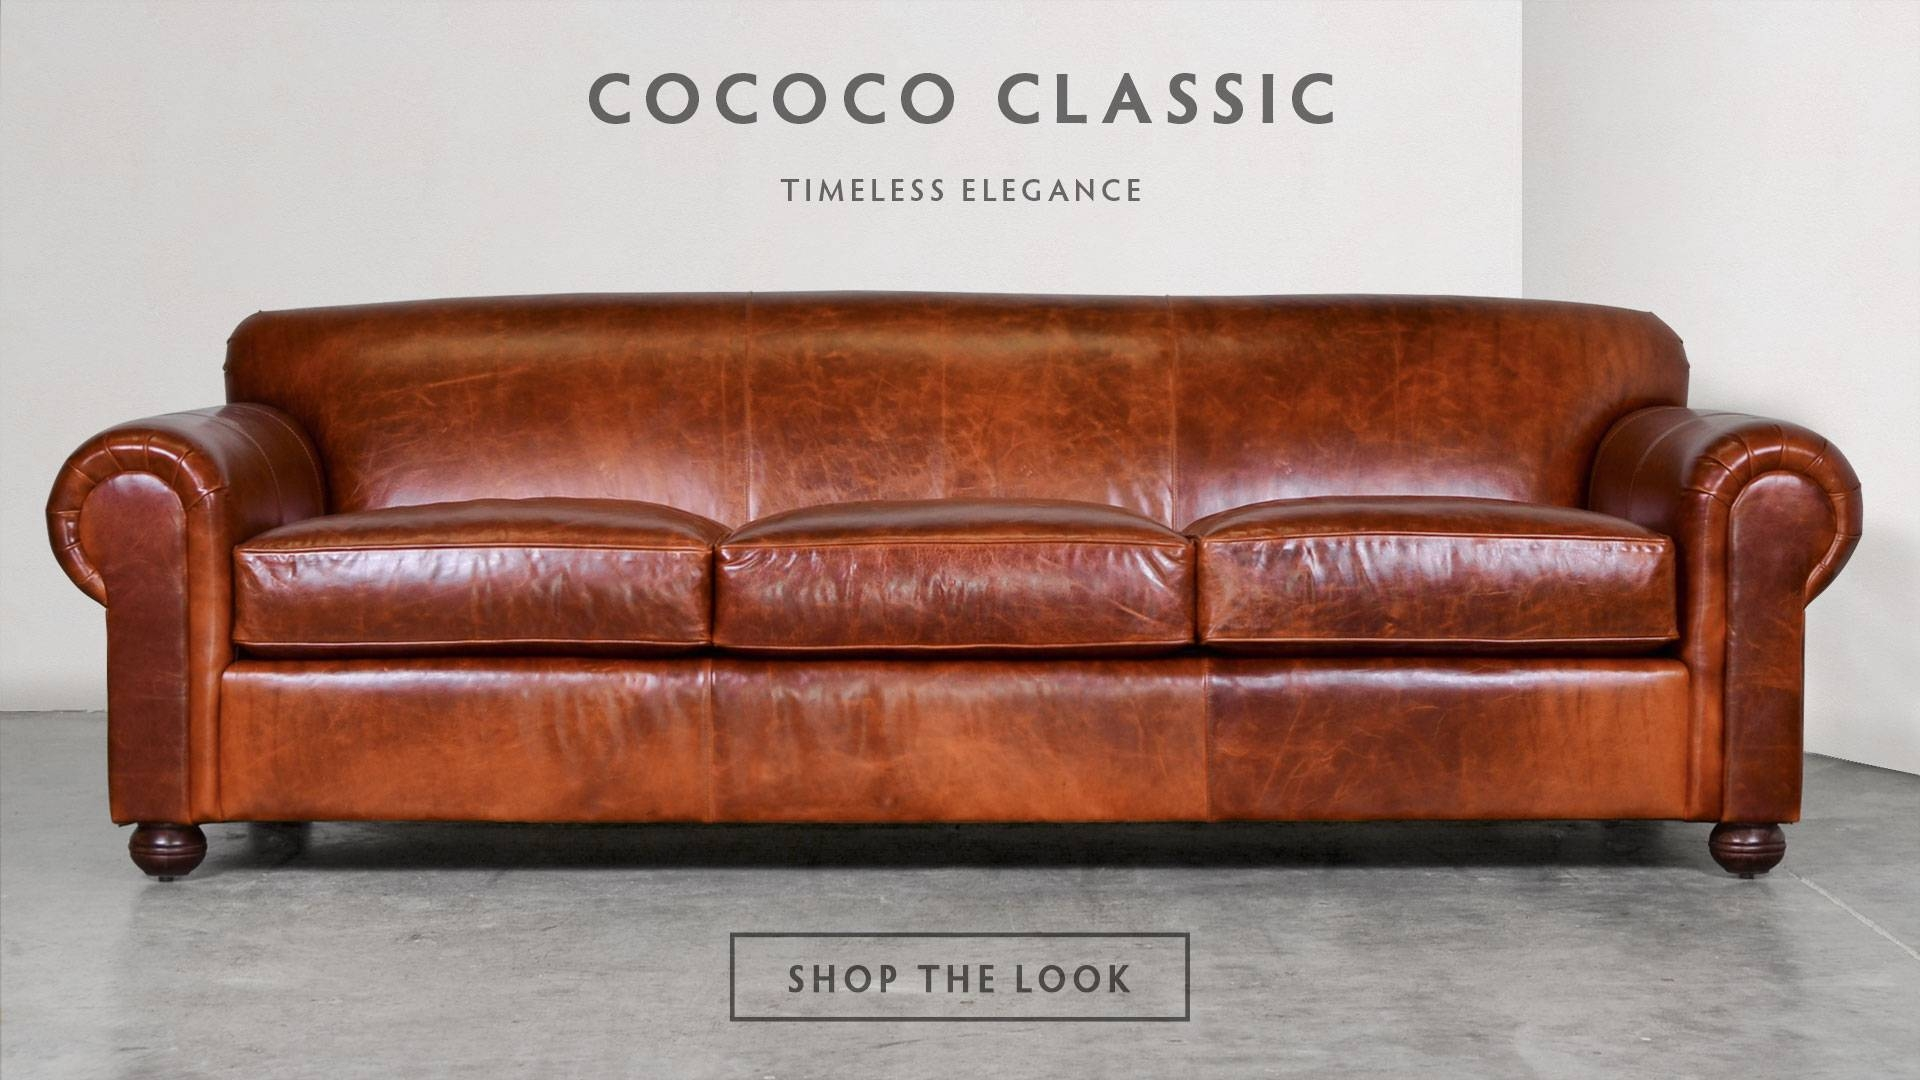 caramel colored leather sofas how to clean a fabric sofa without removable covers 2018 best of